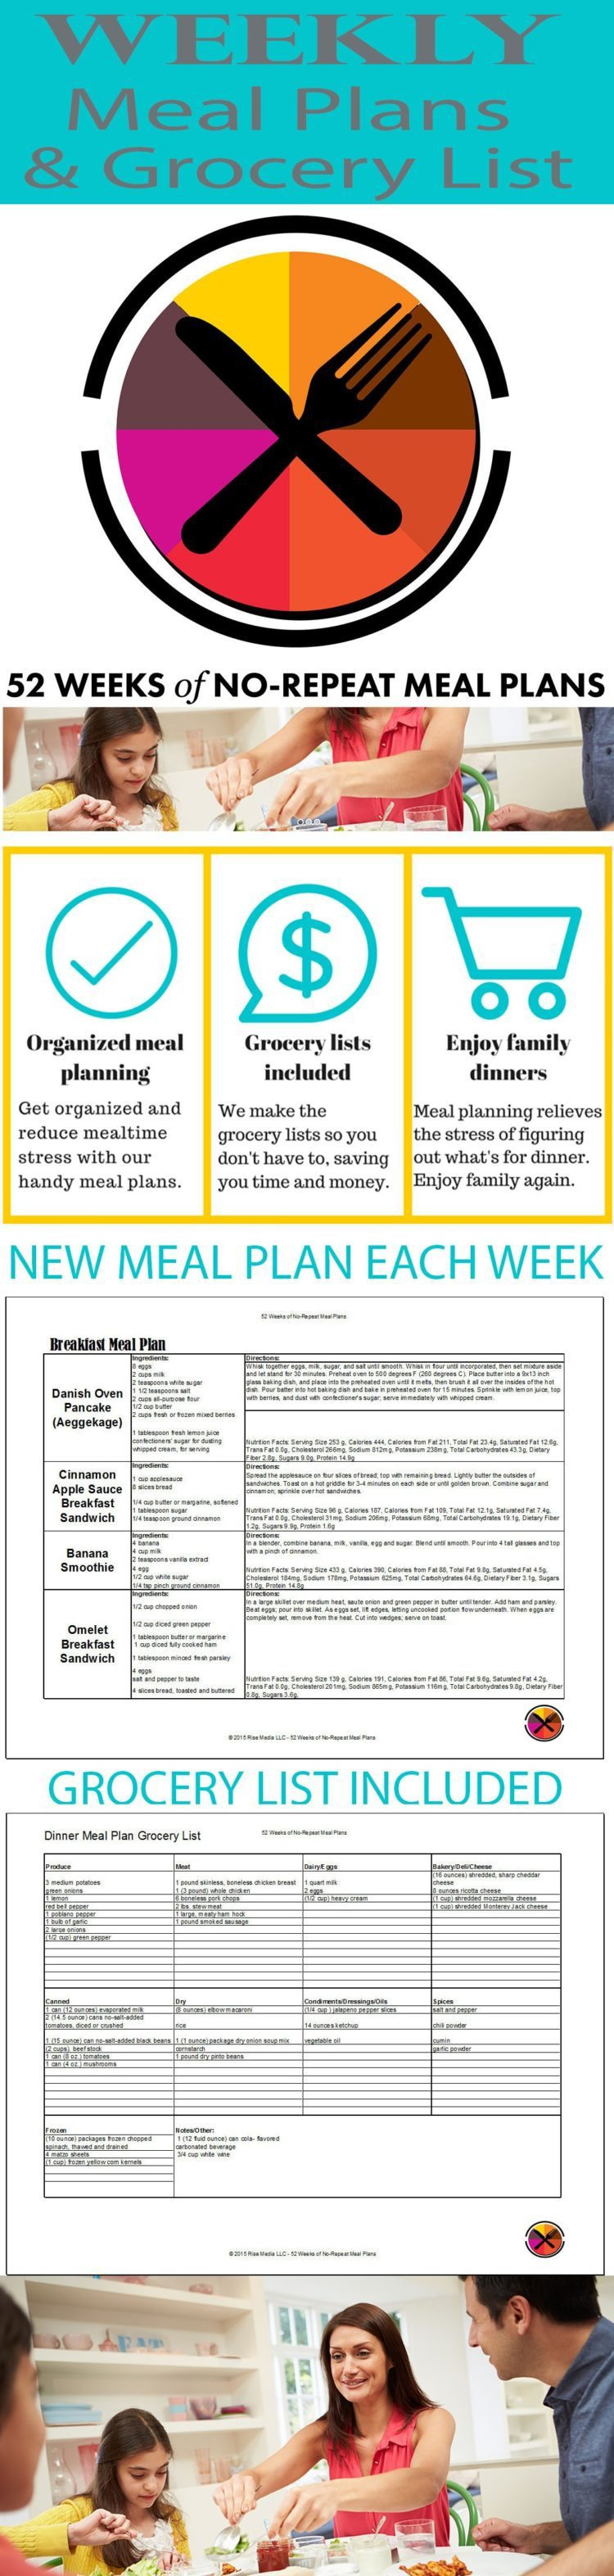 Dinner and Breakfast Meal Plans delivered weekly by email